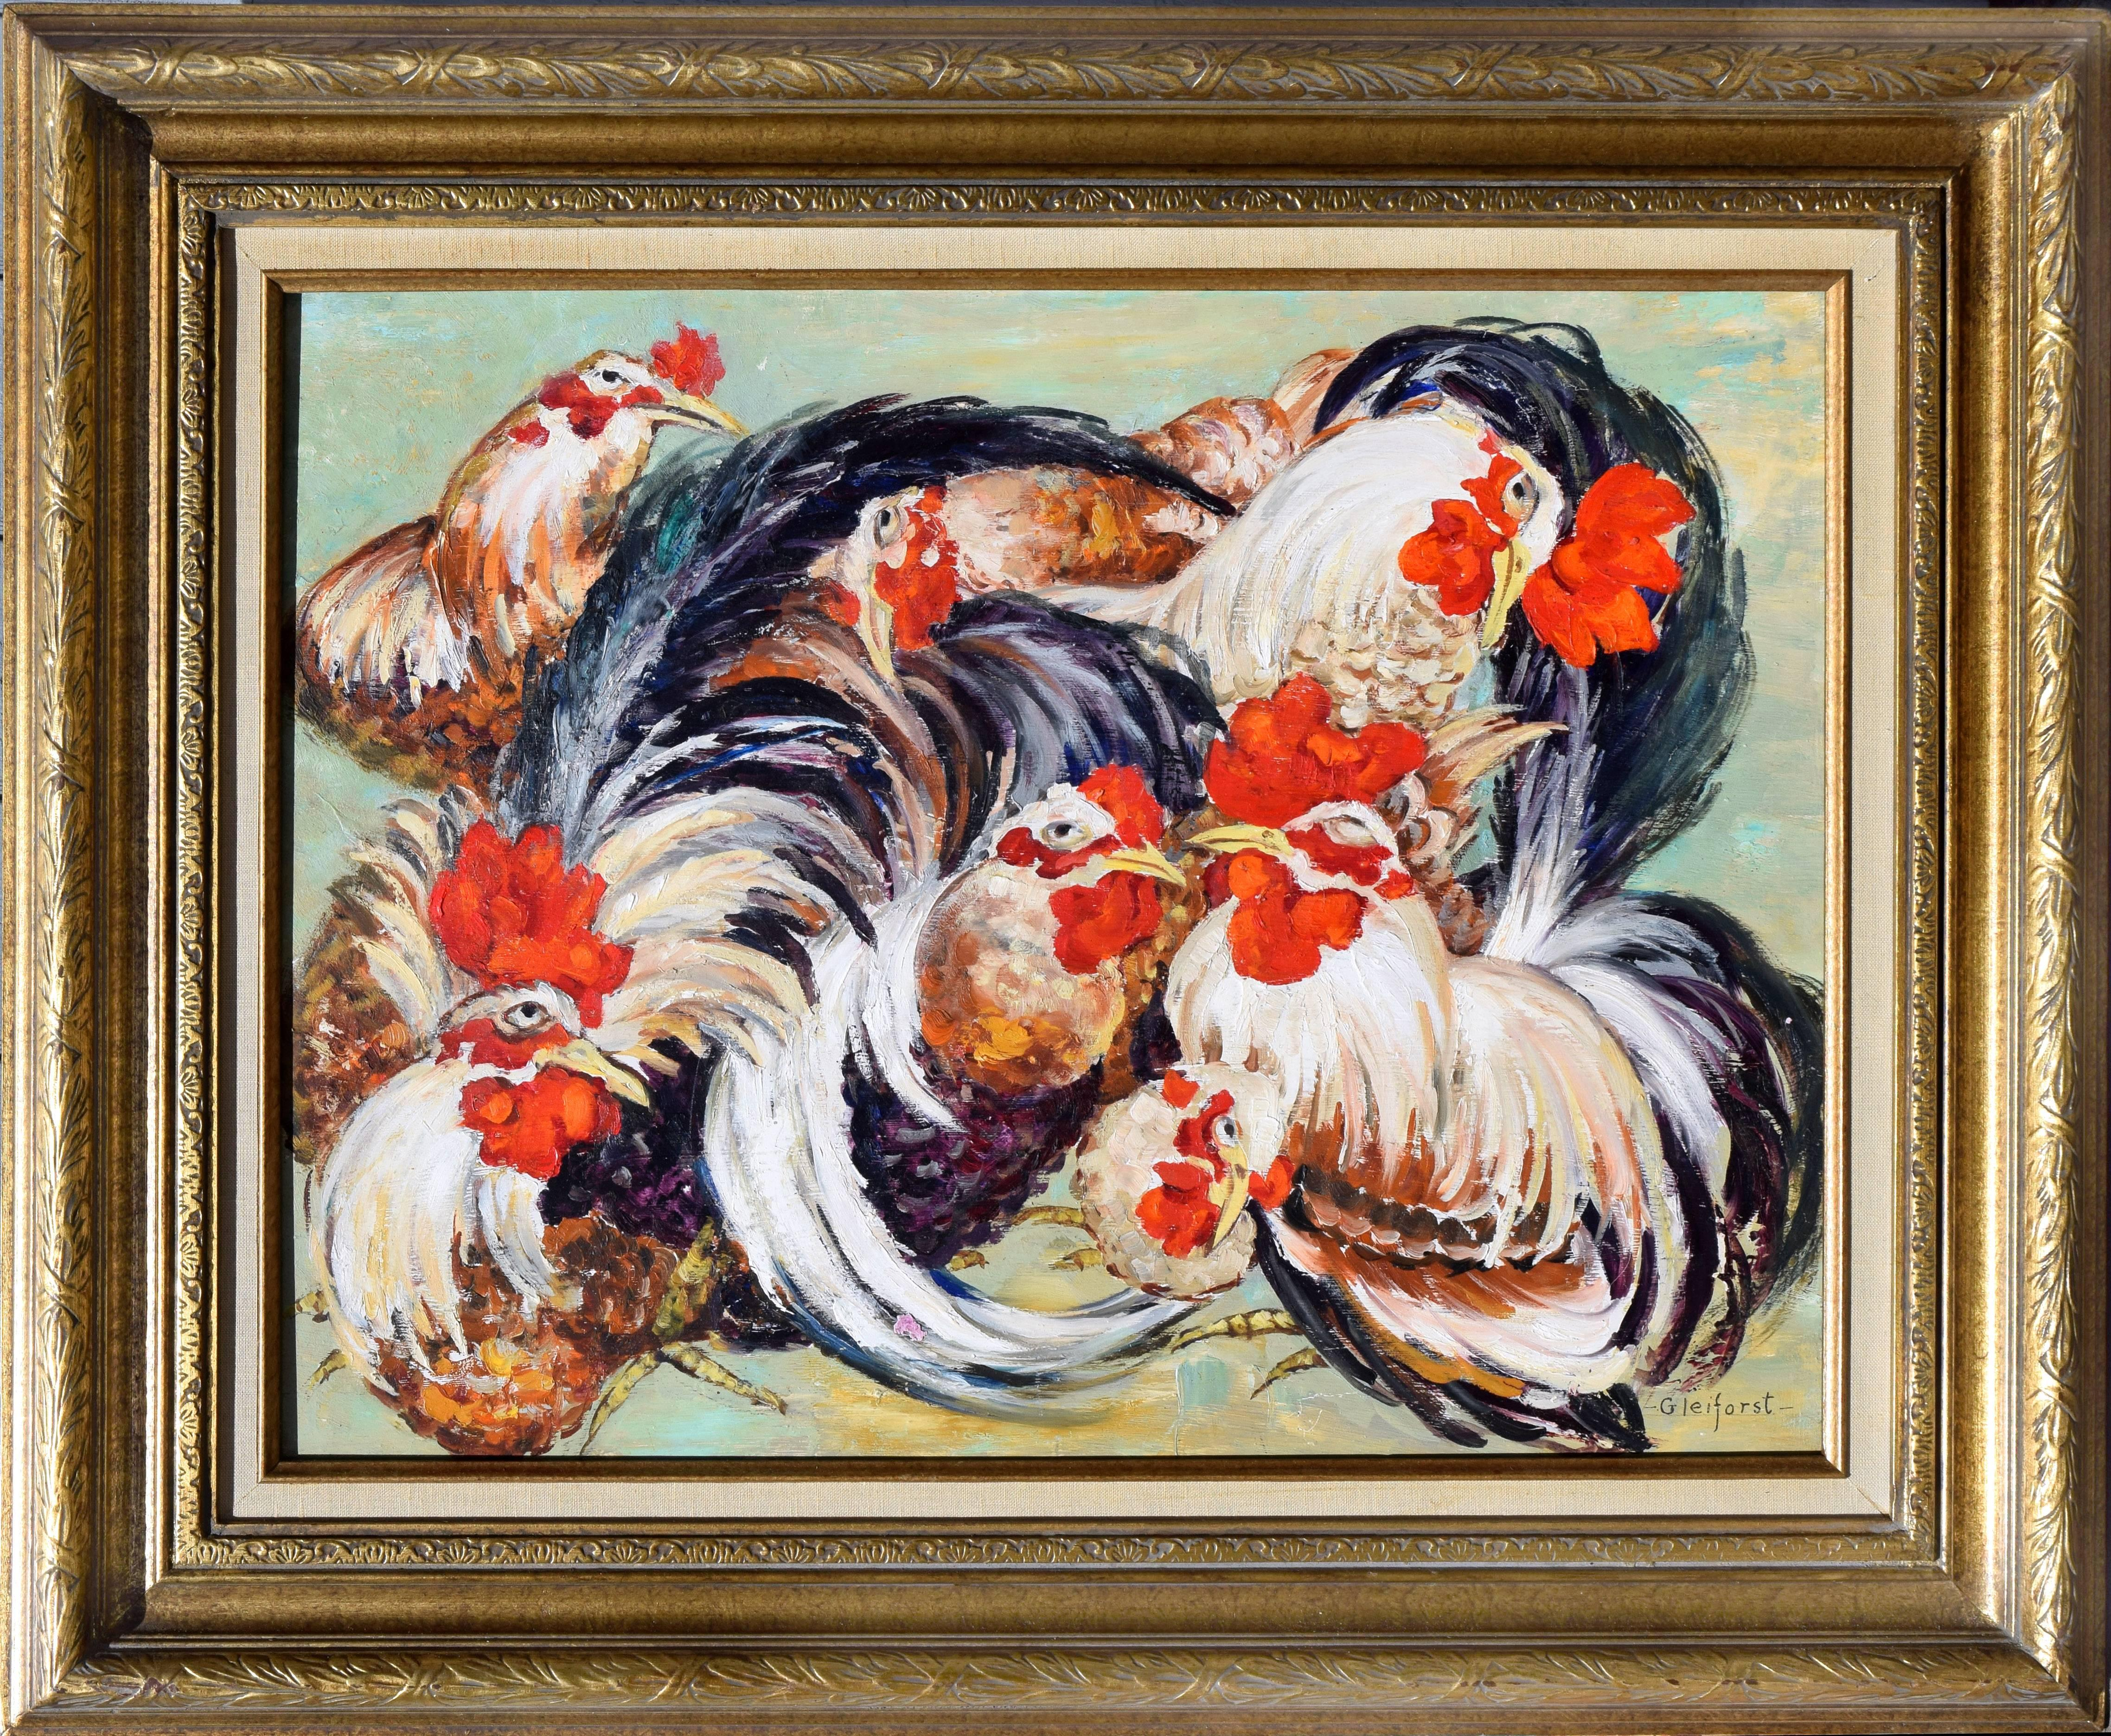 Le Coq Gaulois, French Roosters